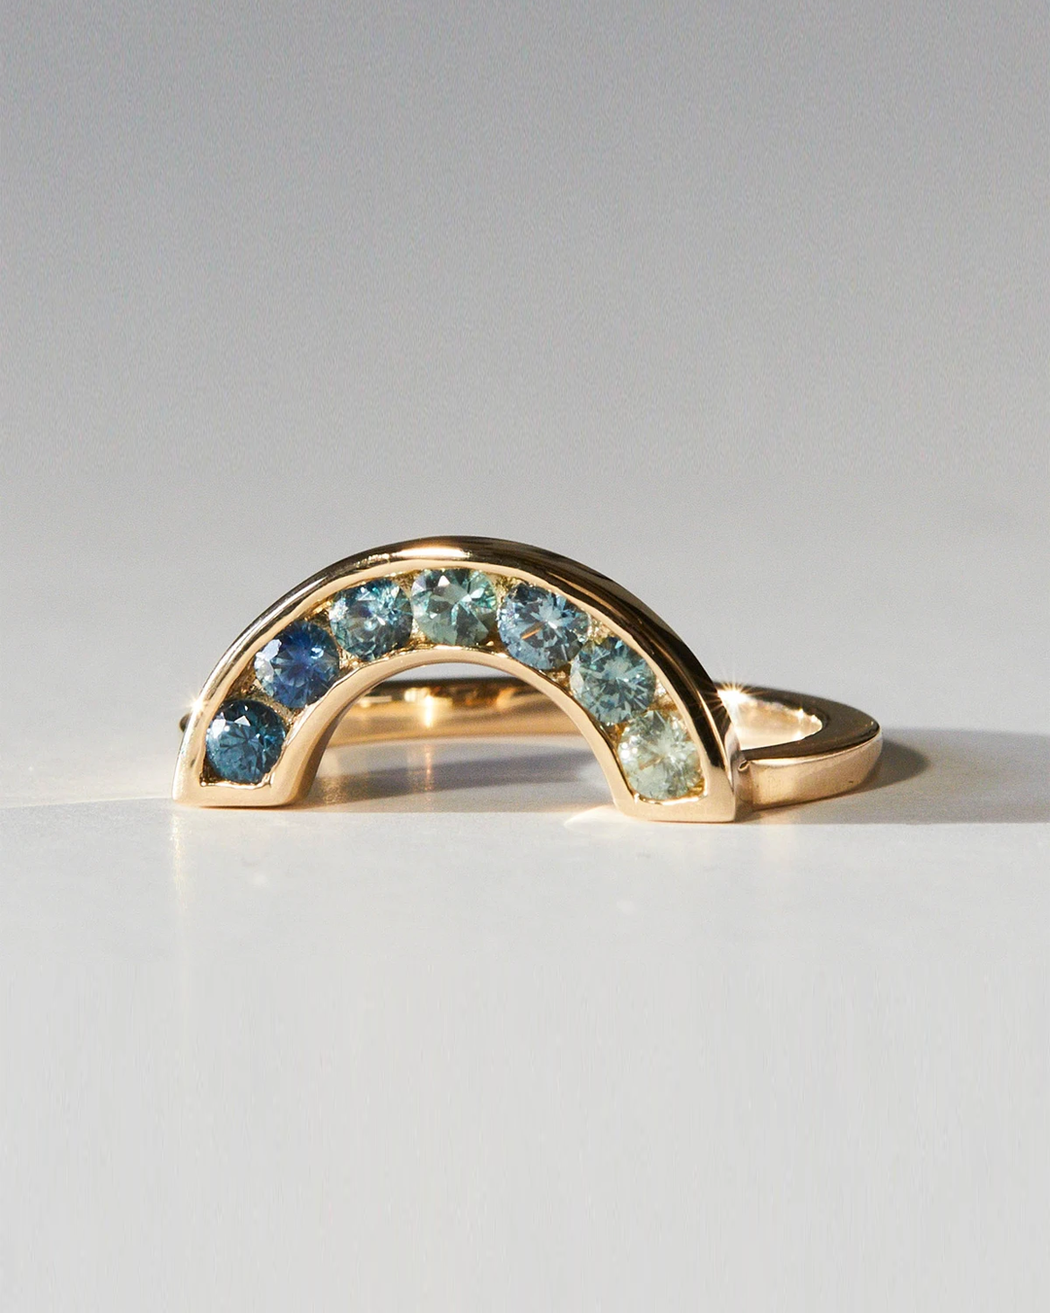 Rainbow Ring / Ombre Sapphires by vendor - rings - Fine Jewelry Studio in Williamsburg, Brooklyn, NYC